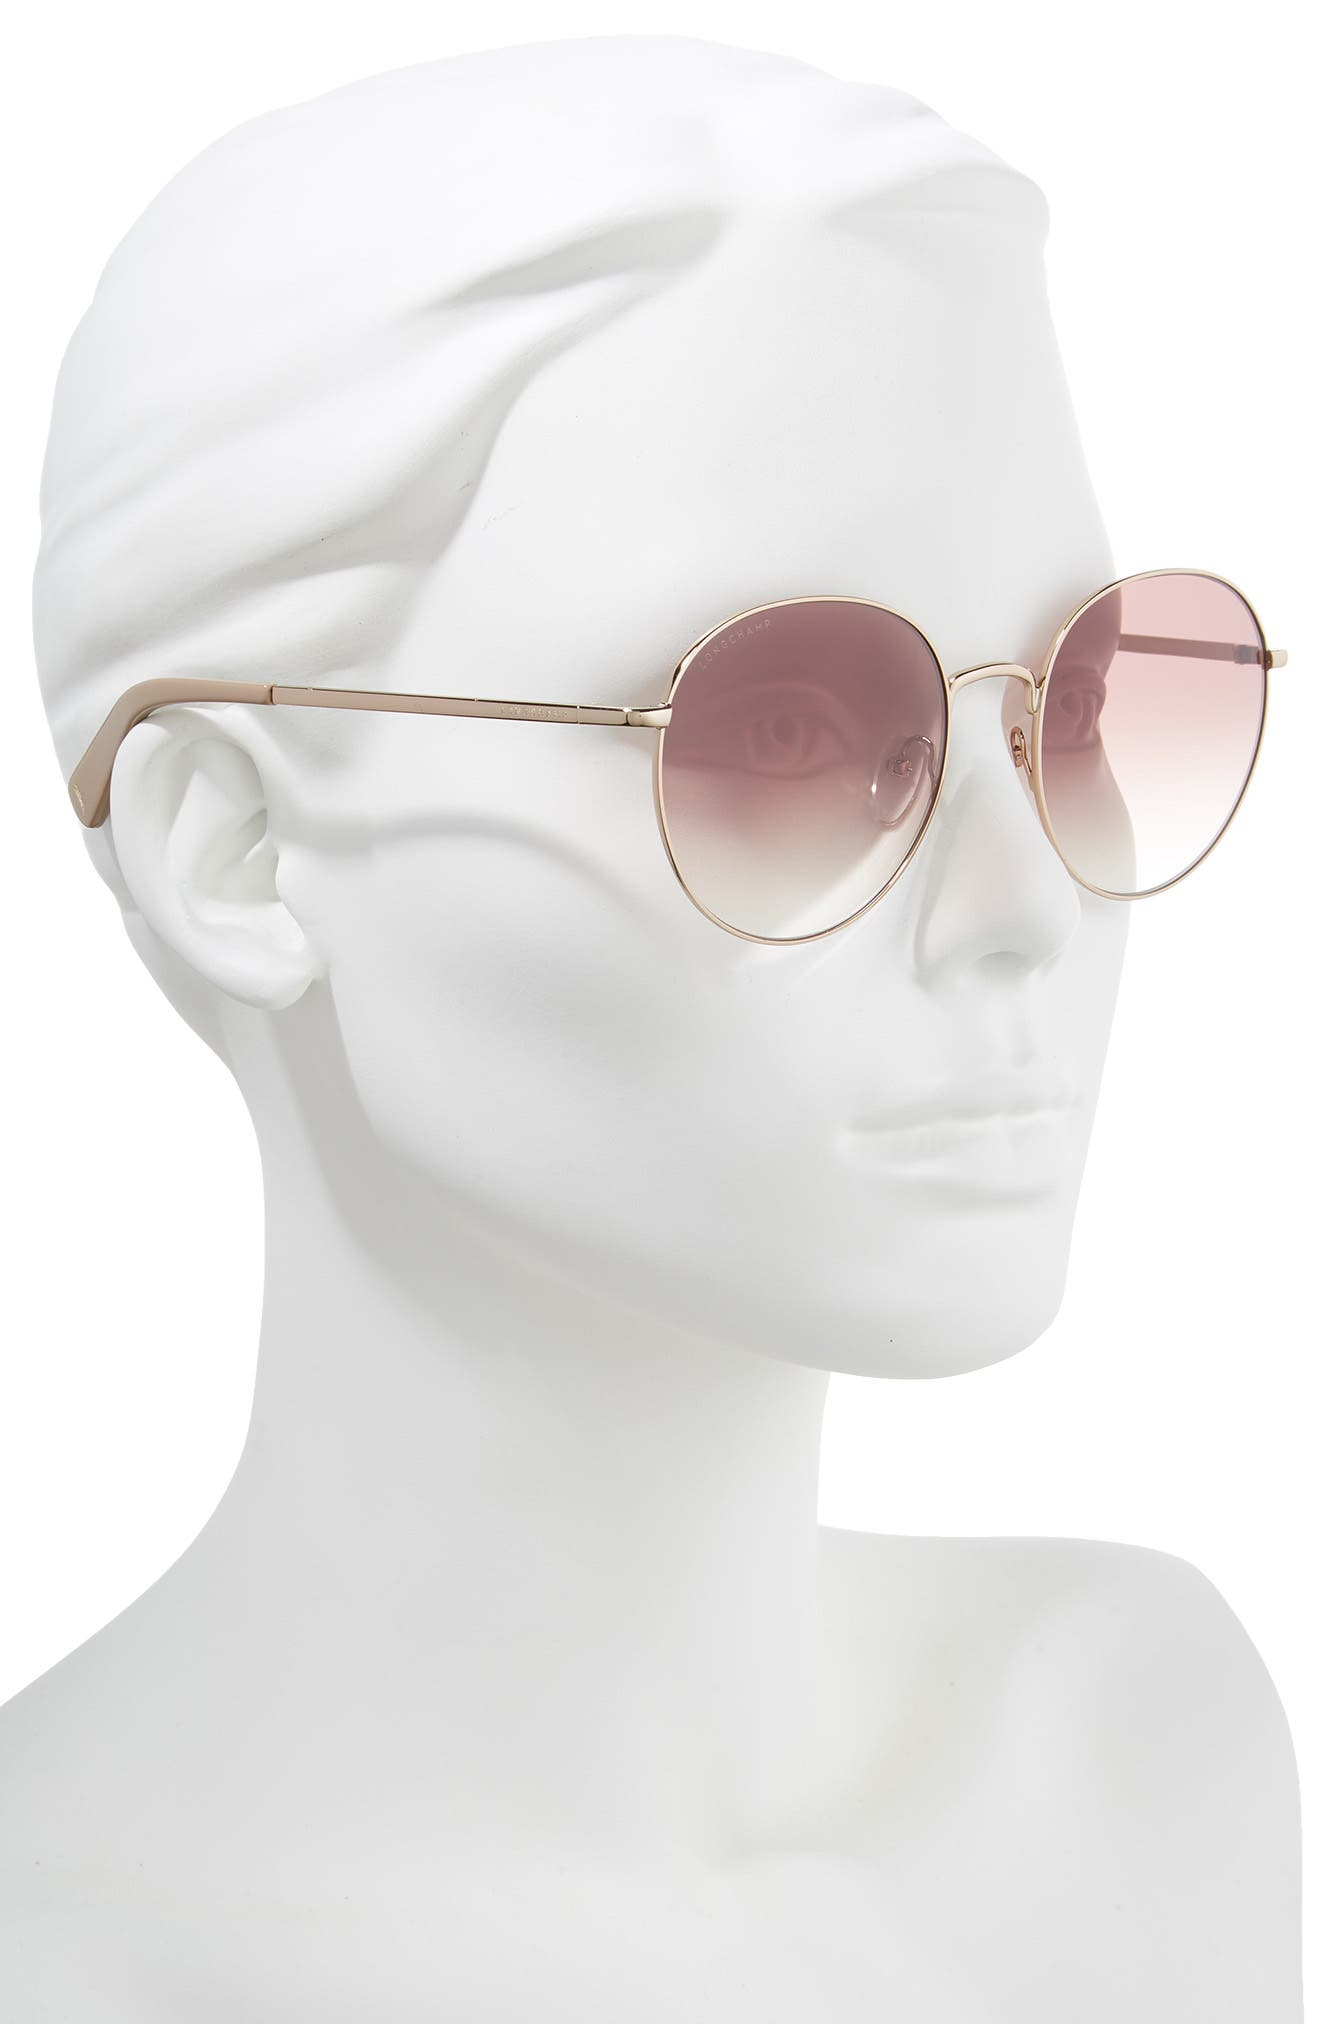 56mm Round Sunglasses,                             Alternate thumbnail 2, color,                             ROSE GOLD/ NUDE